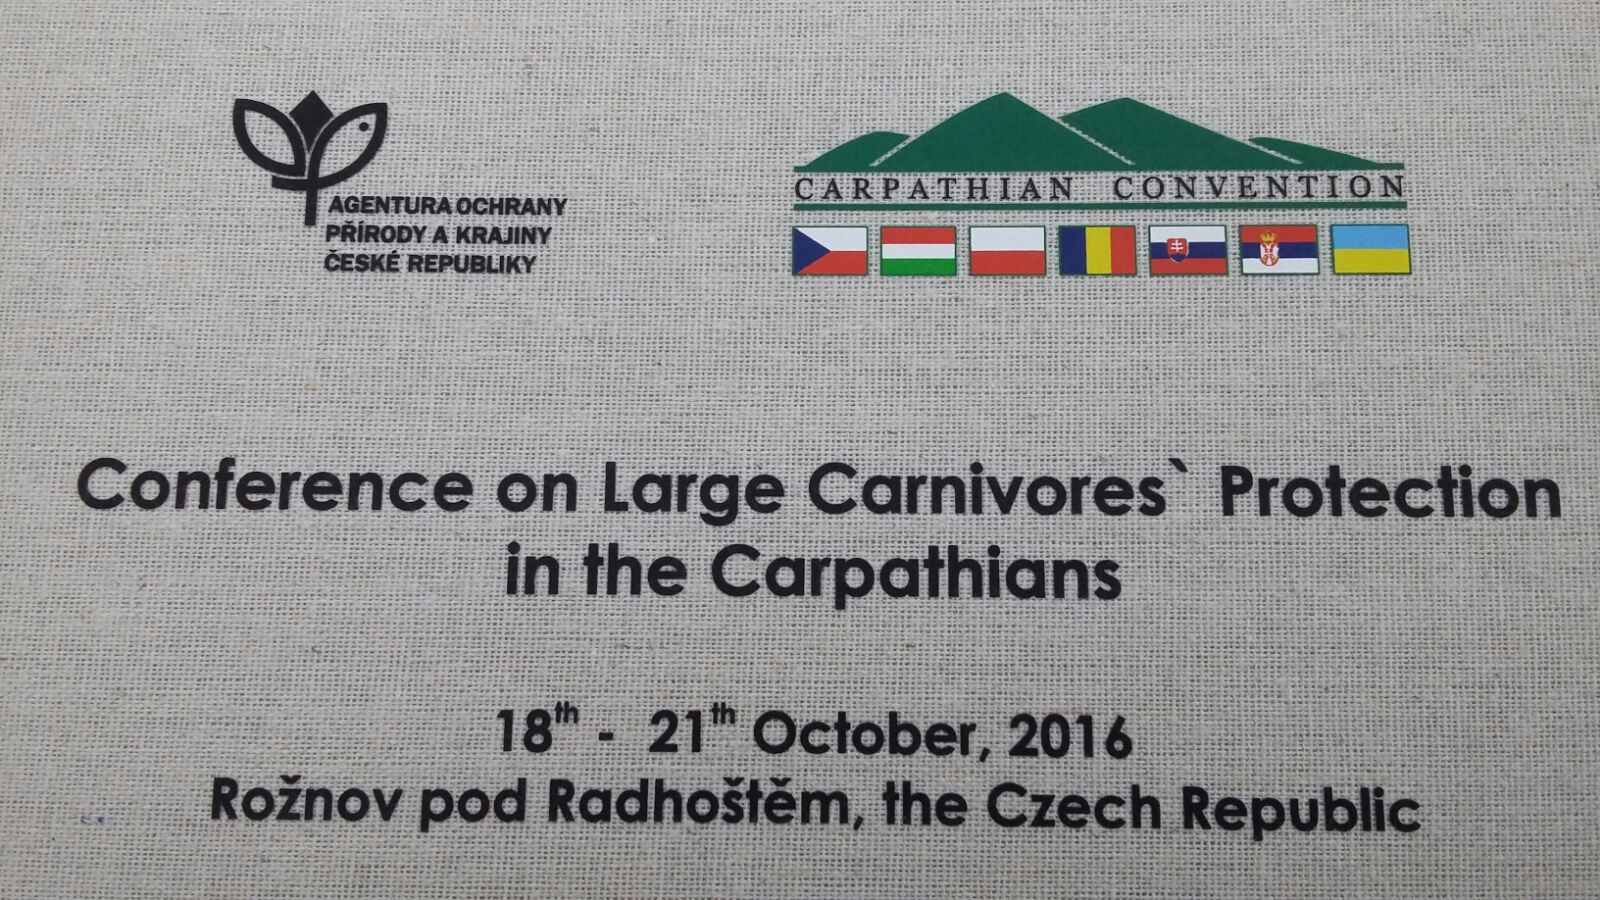 Conference on Large Carnivores' Protection in the Craphatians a Roznov (Repubblica Ceca)